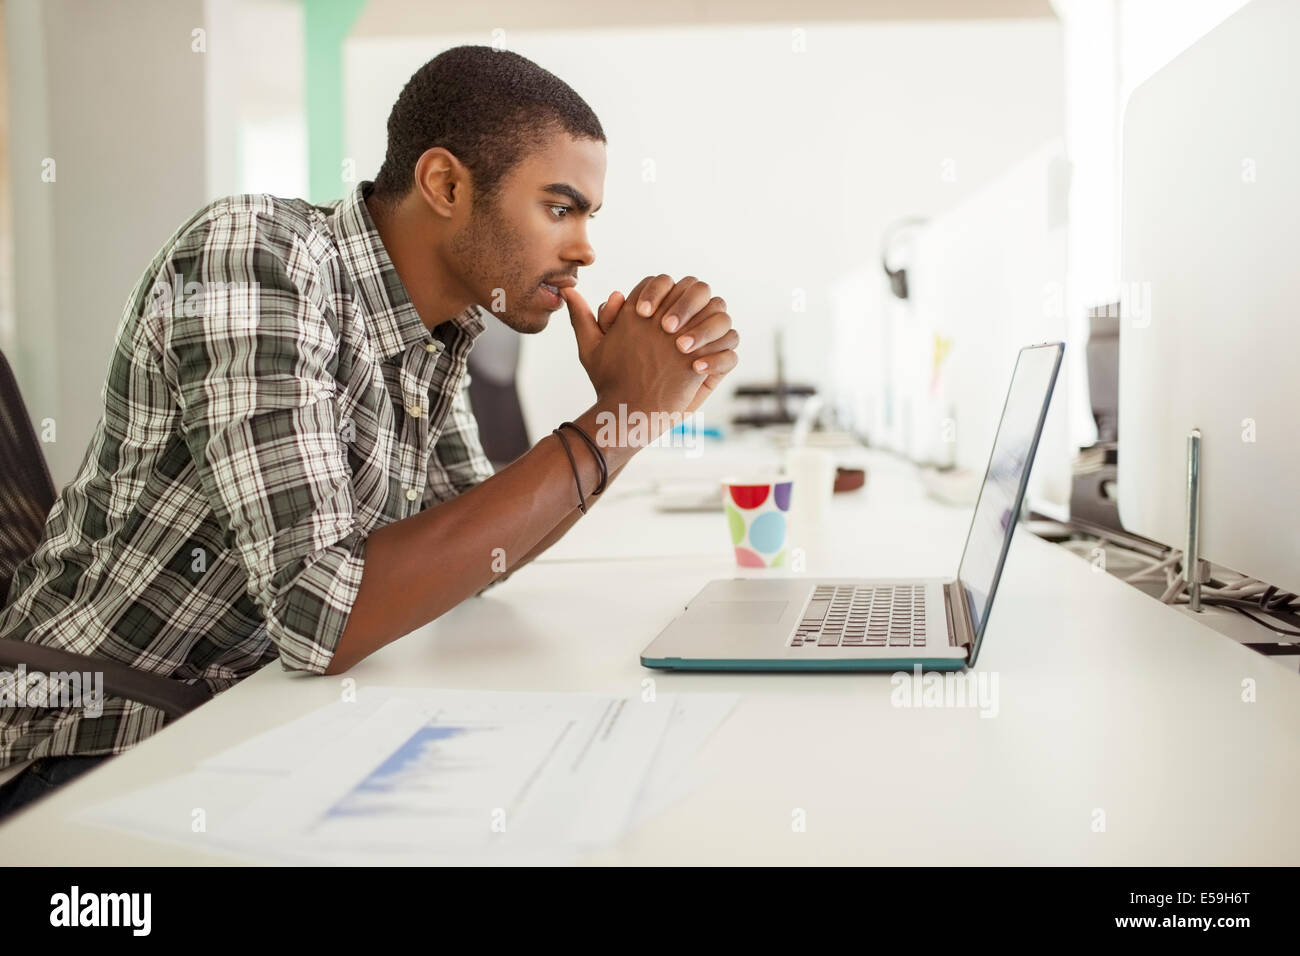 Man working on laptop at office - Stock Image